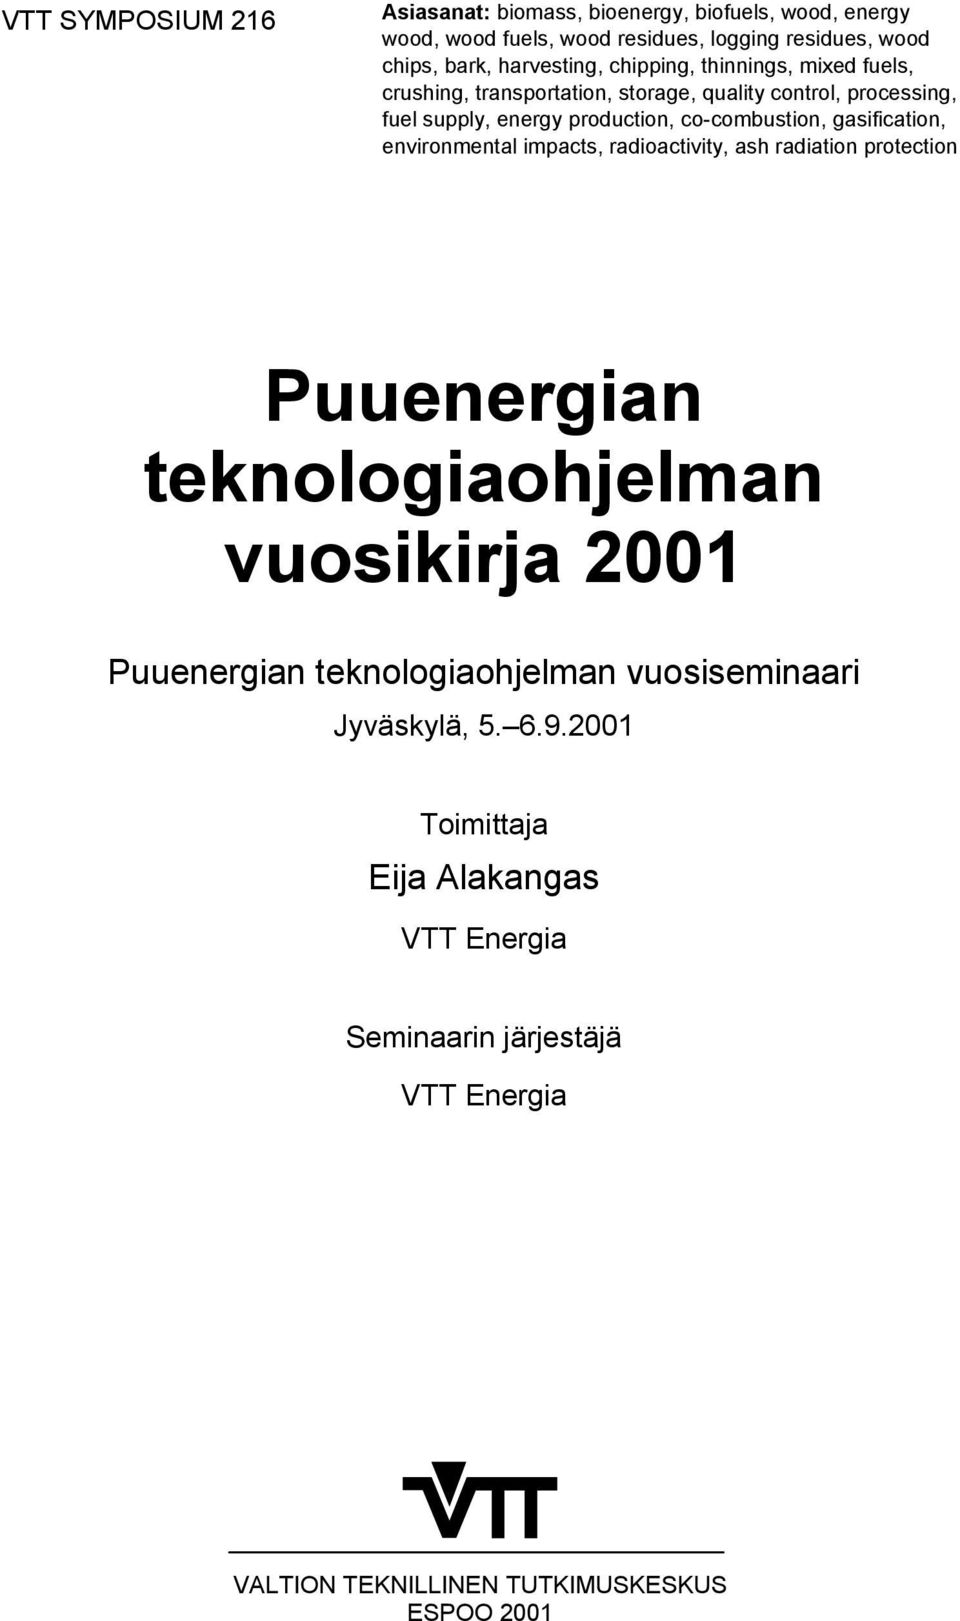 co-combustion, gasification, environmental impacts, radioactivity, ash radiation protection Puuenergian teknologiaohjelman vuosikirja 2001 Puuenergian